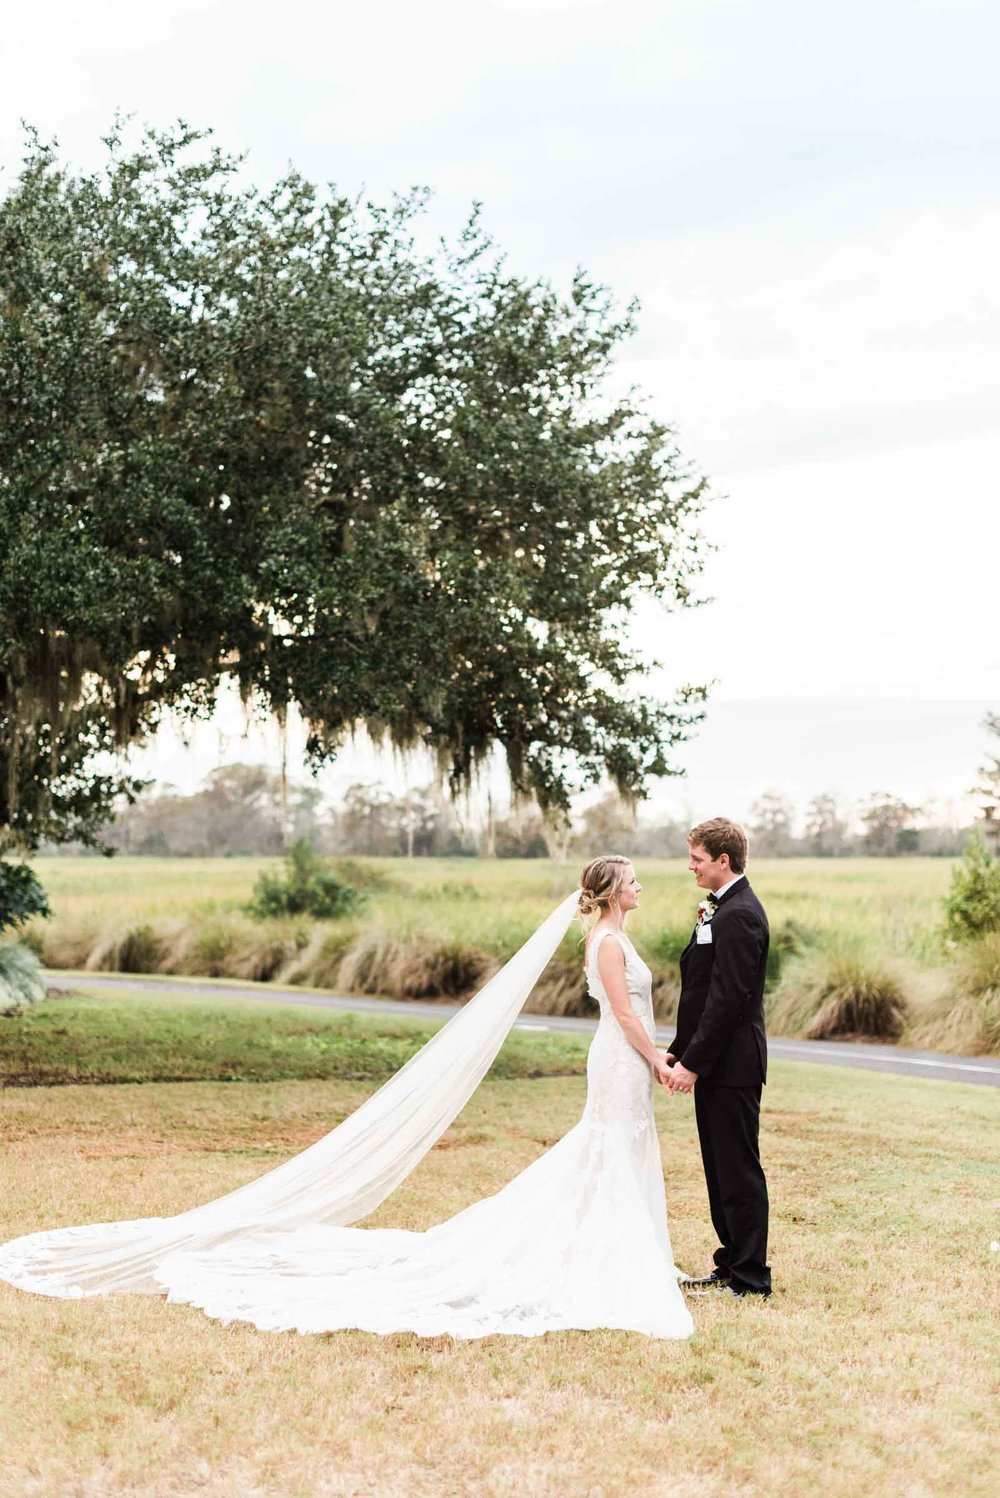 Wedding at Heritage Plantation in Pawley's Island_Markie Walden Photo-47.jpg